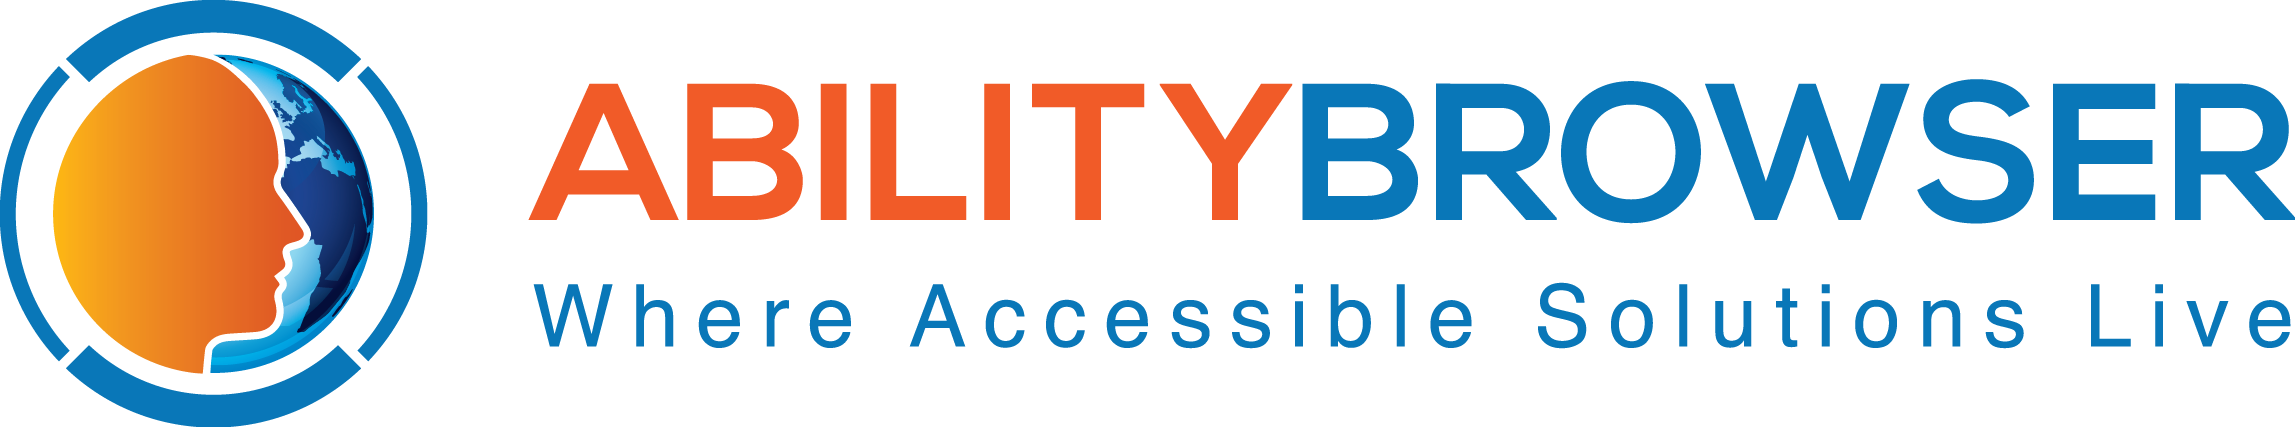 ability-browser-logo